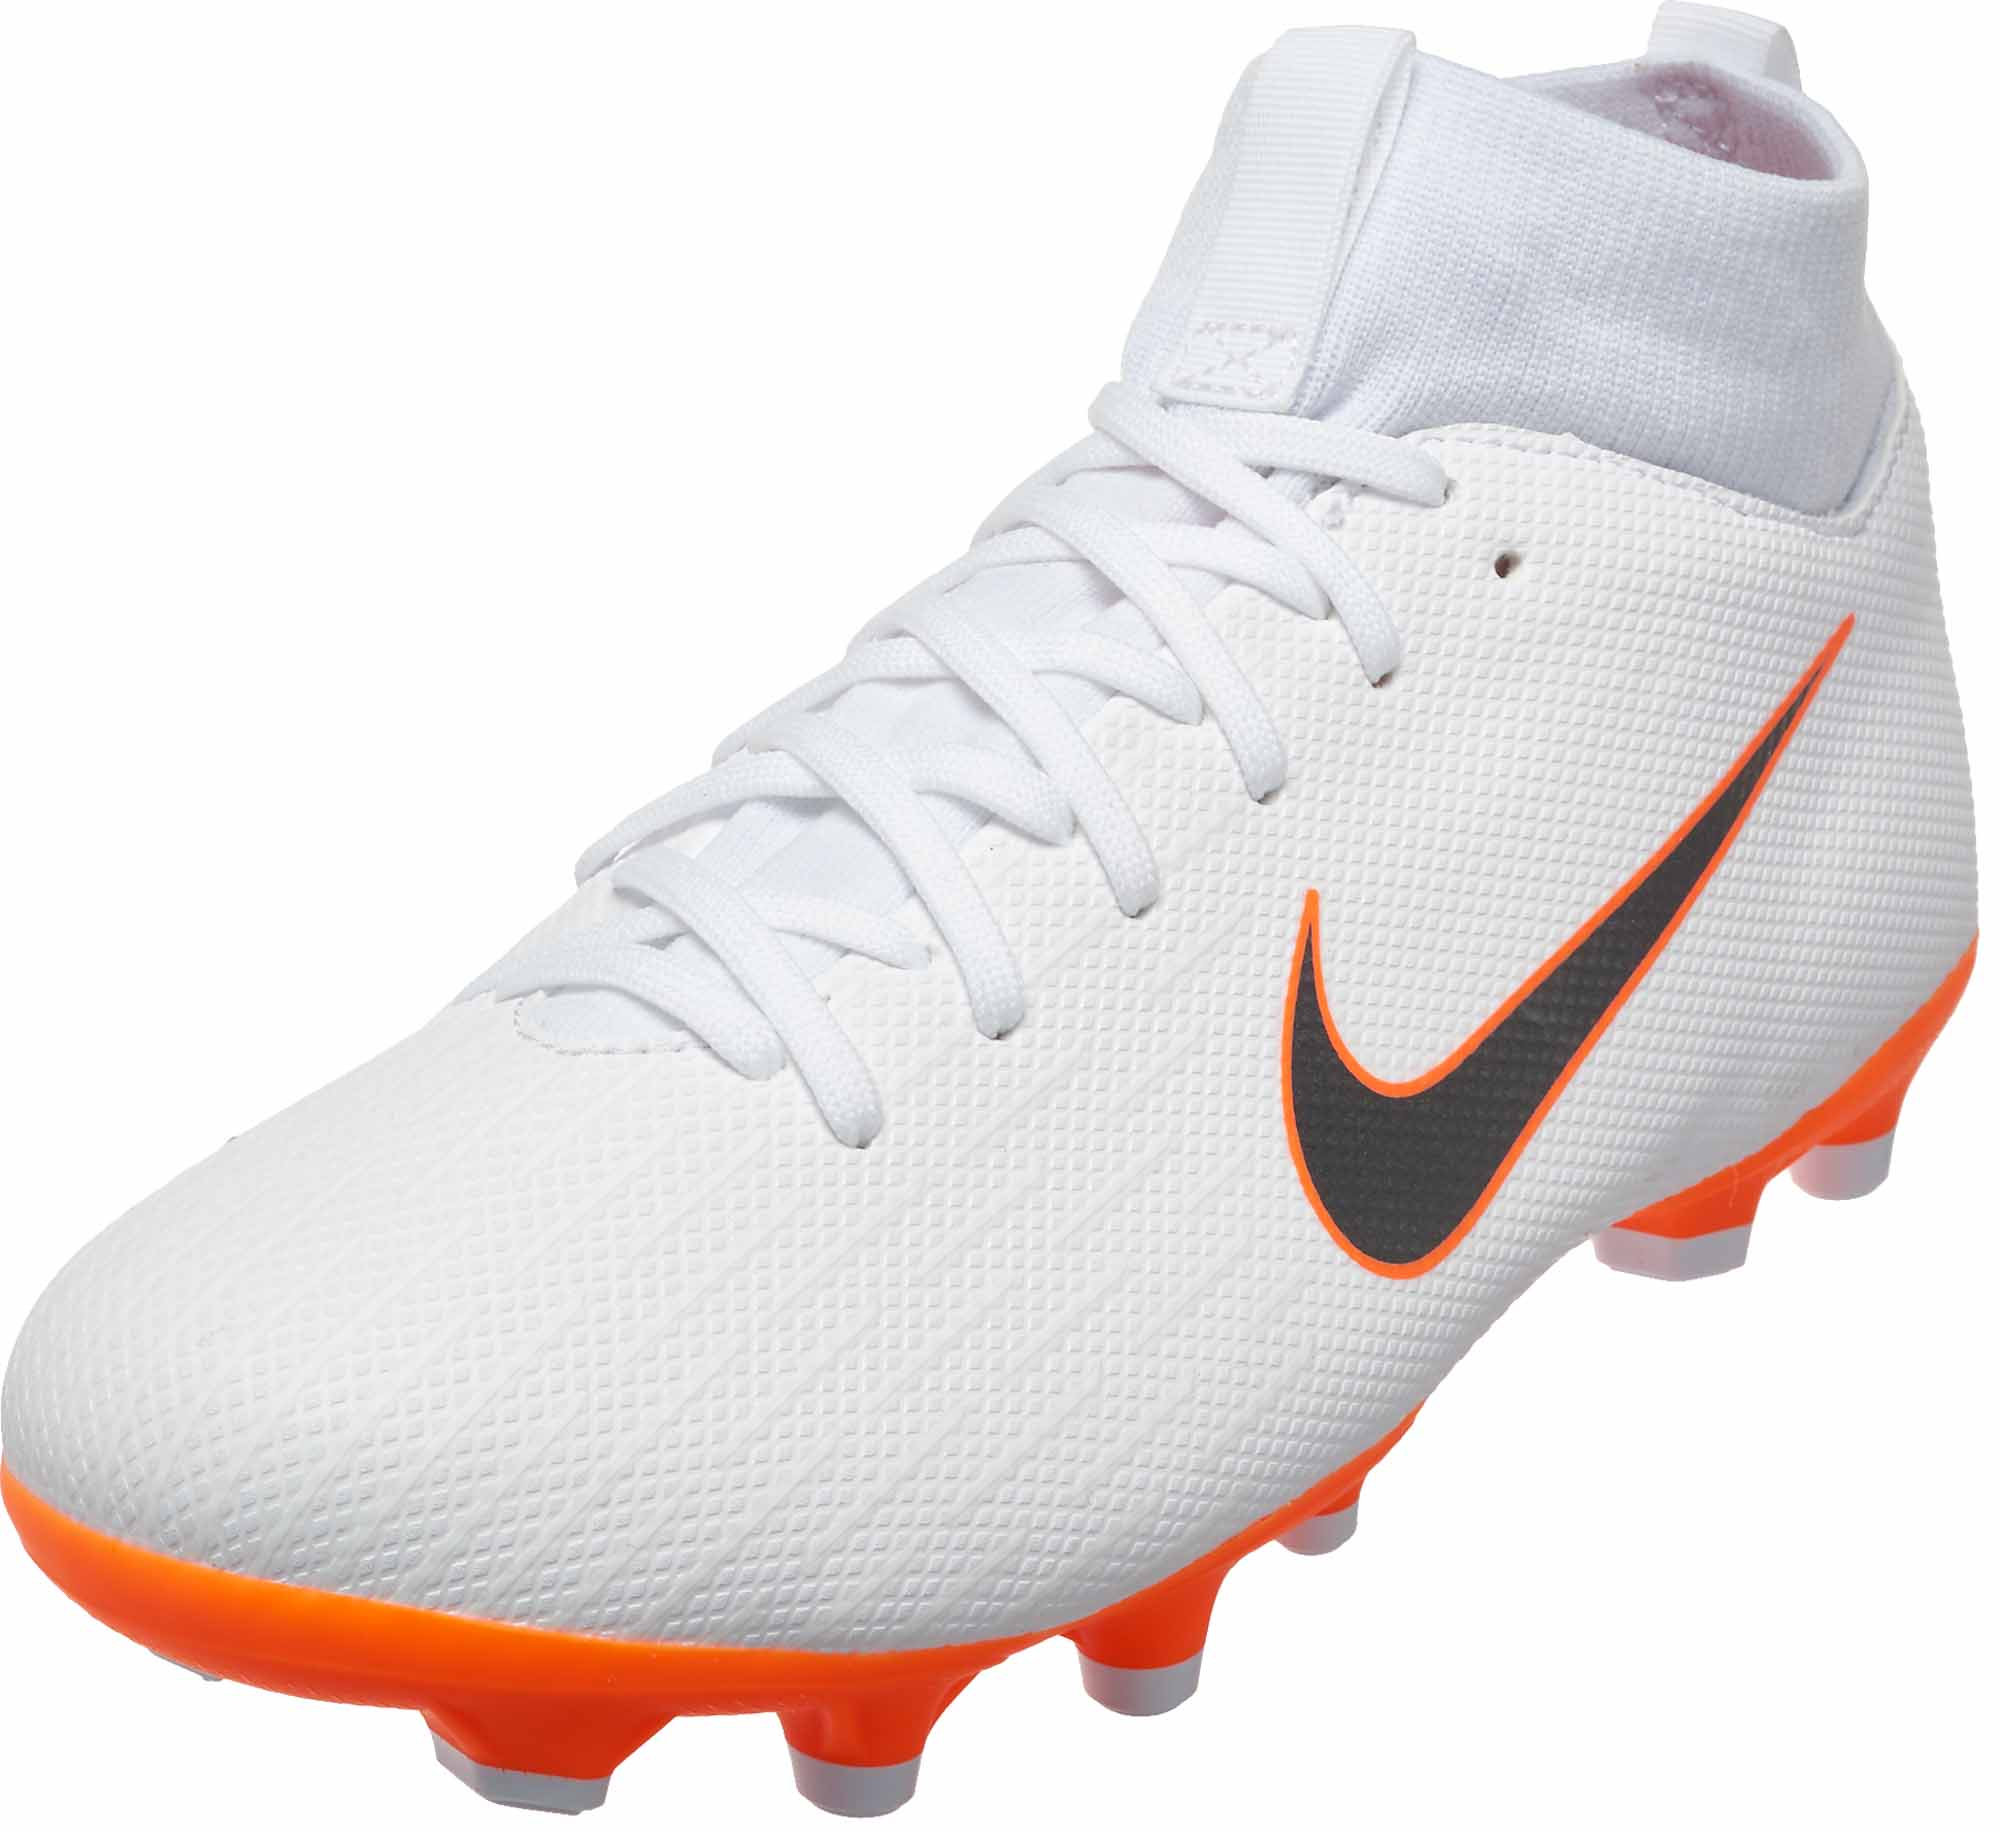 781e6e069b23 Nike Mercurial Superfly 6 Academy MG – Youth – White Metallic Cool  Grey Total